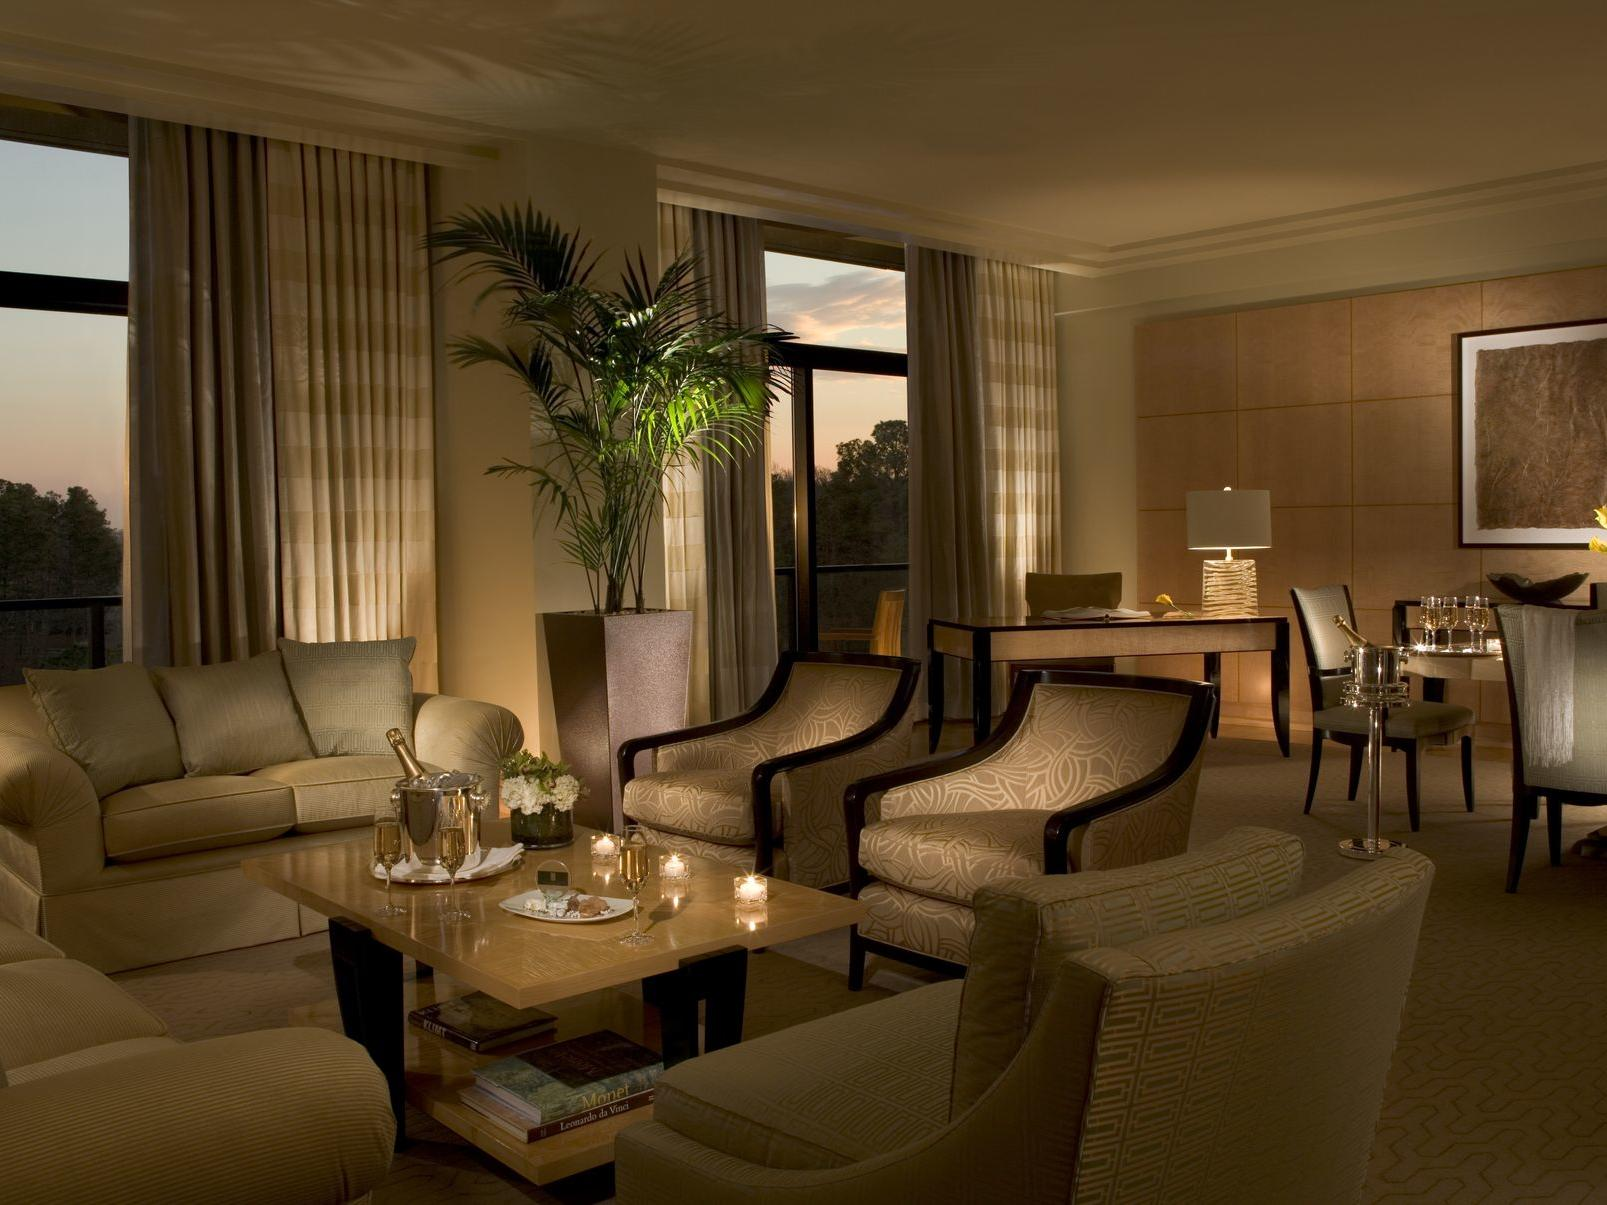 dimly lit lounge area of hotel suite with couches and tables